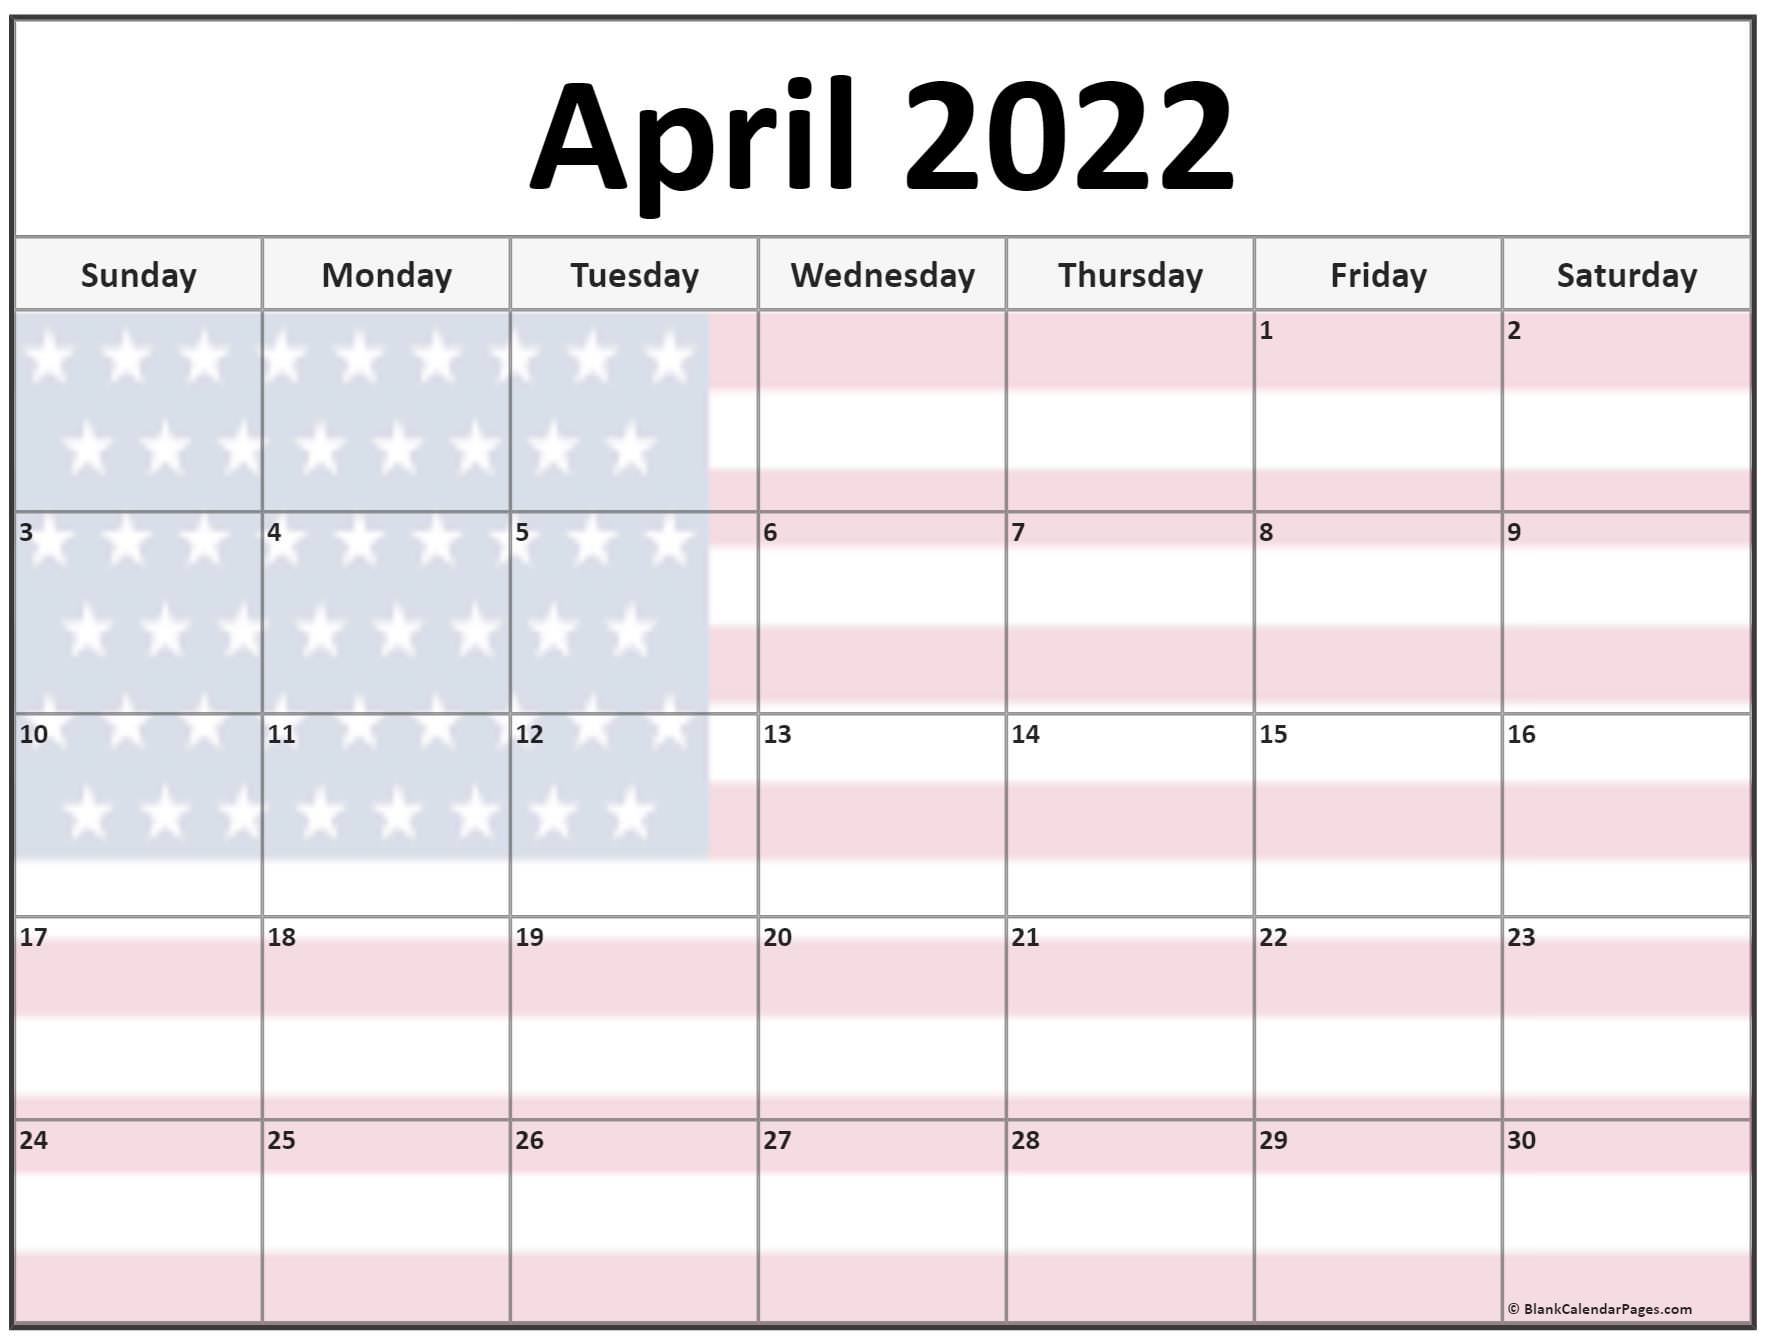 Collection Of April 2022 Photo Calendars With Image Filters. For Blank Calendar April 2022 Printable February